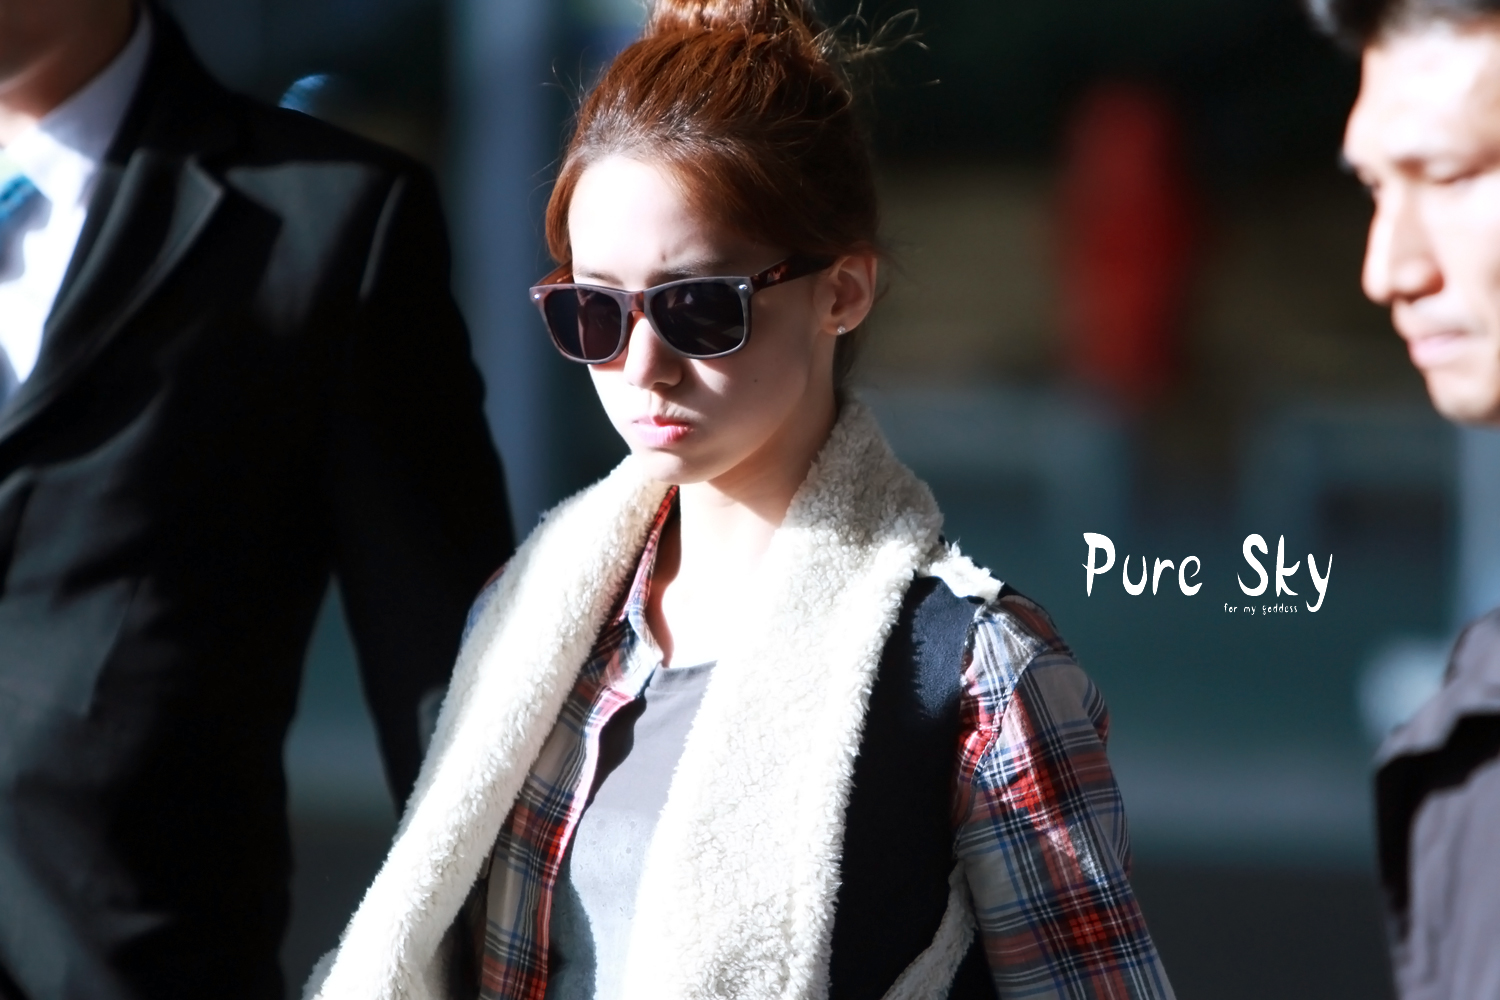 아 ♥ 내 왕자님: 121126 Yoona - Incheon Airport [PureSky]